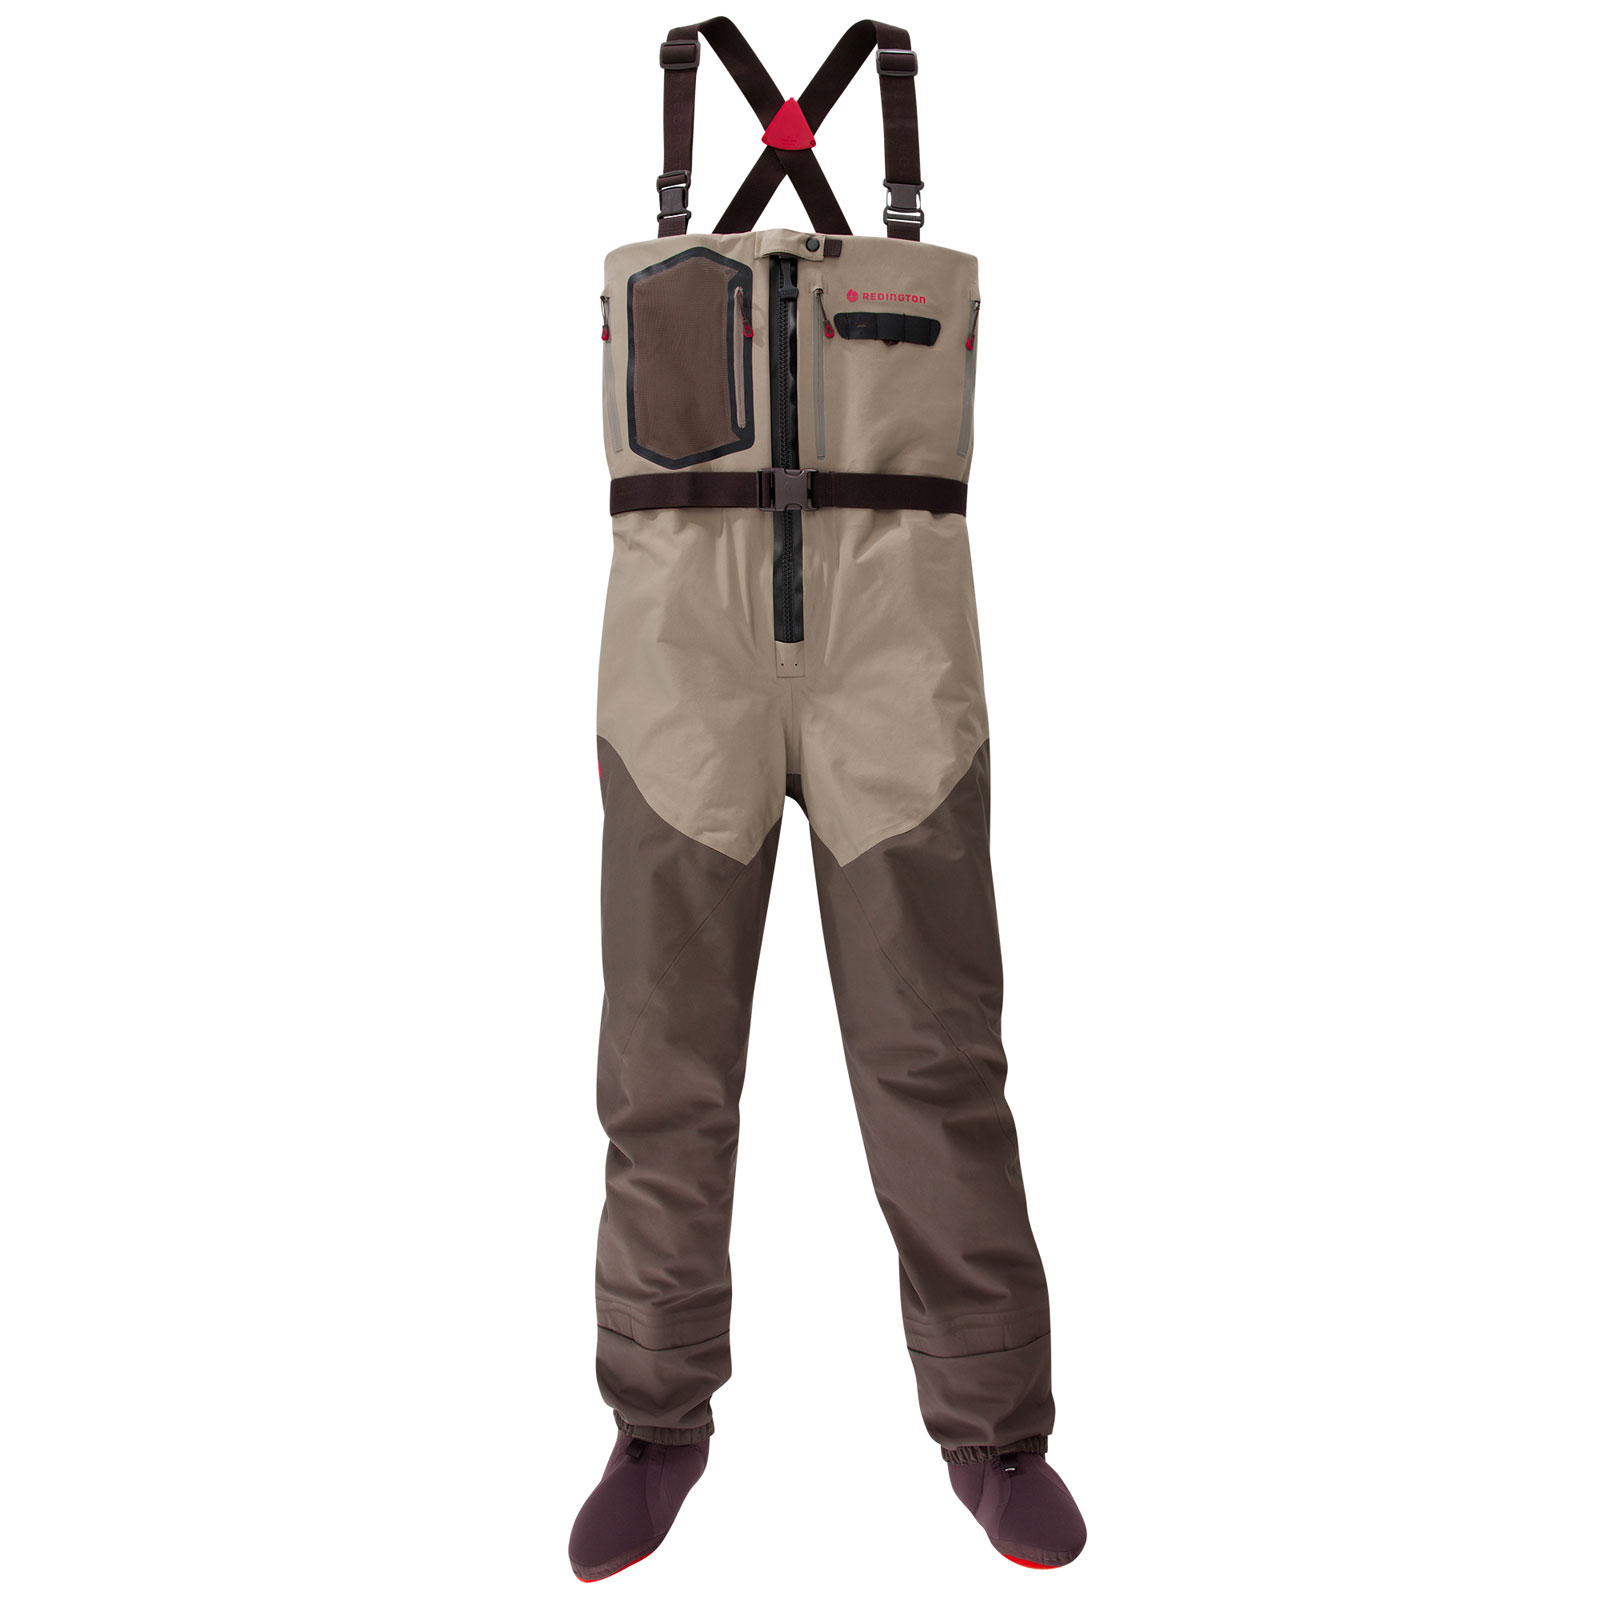 Redington Men's Sonic-Pro HDZ Stockingfoot Fishing Waders - Brown (L)